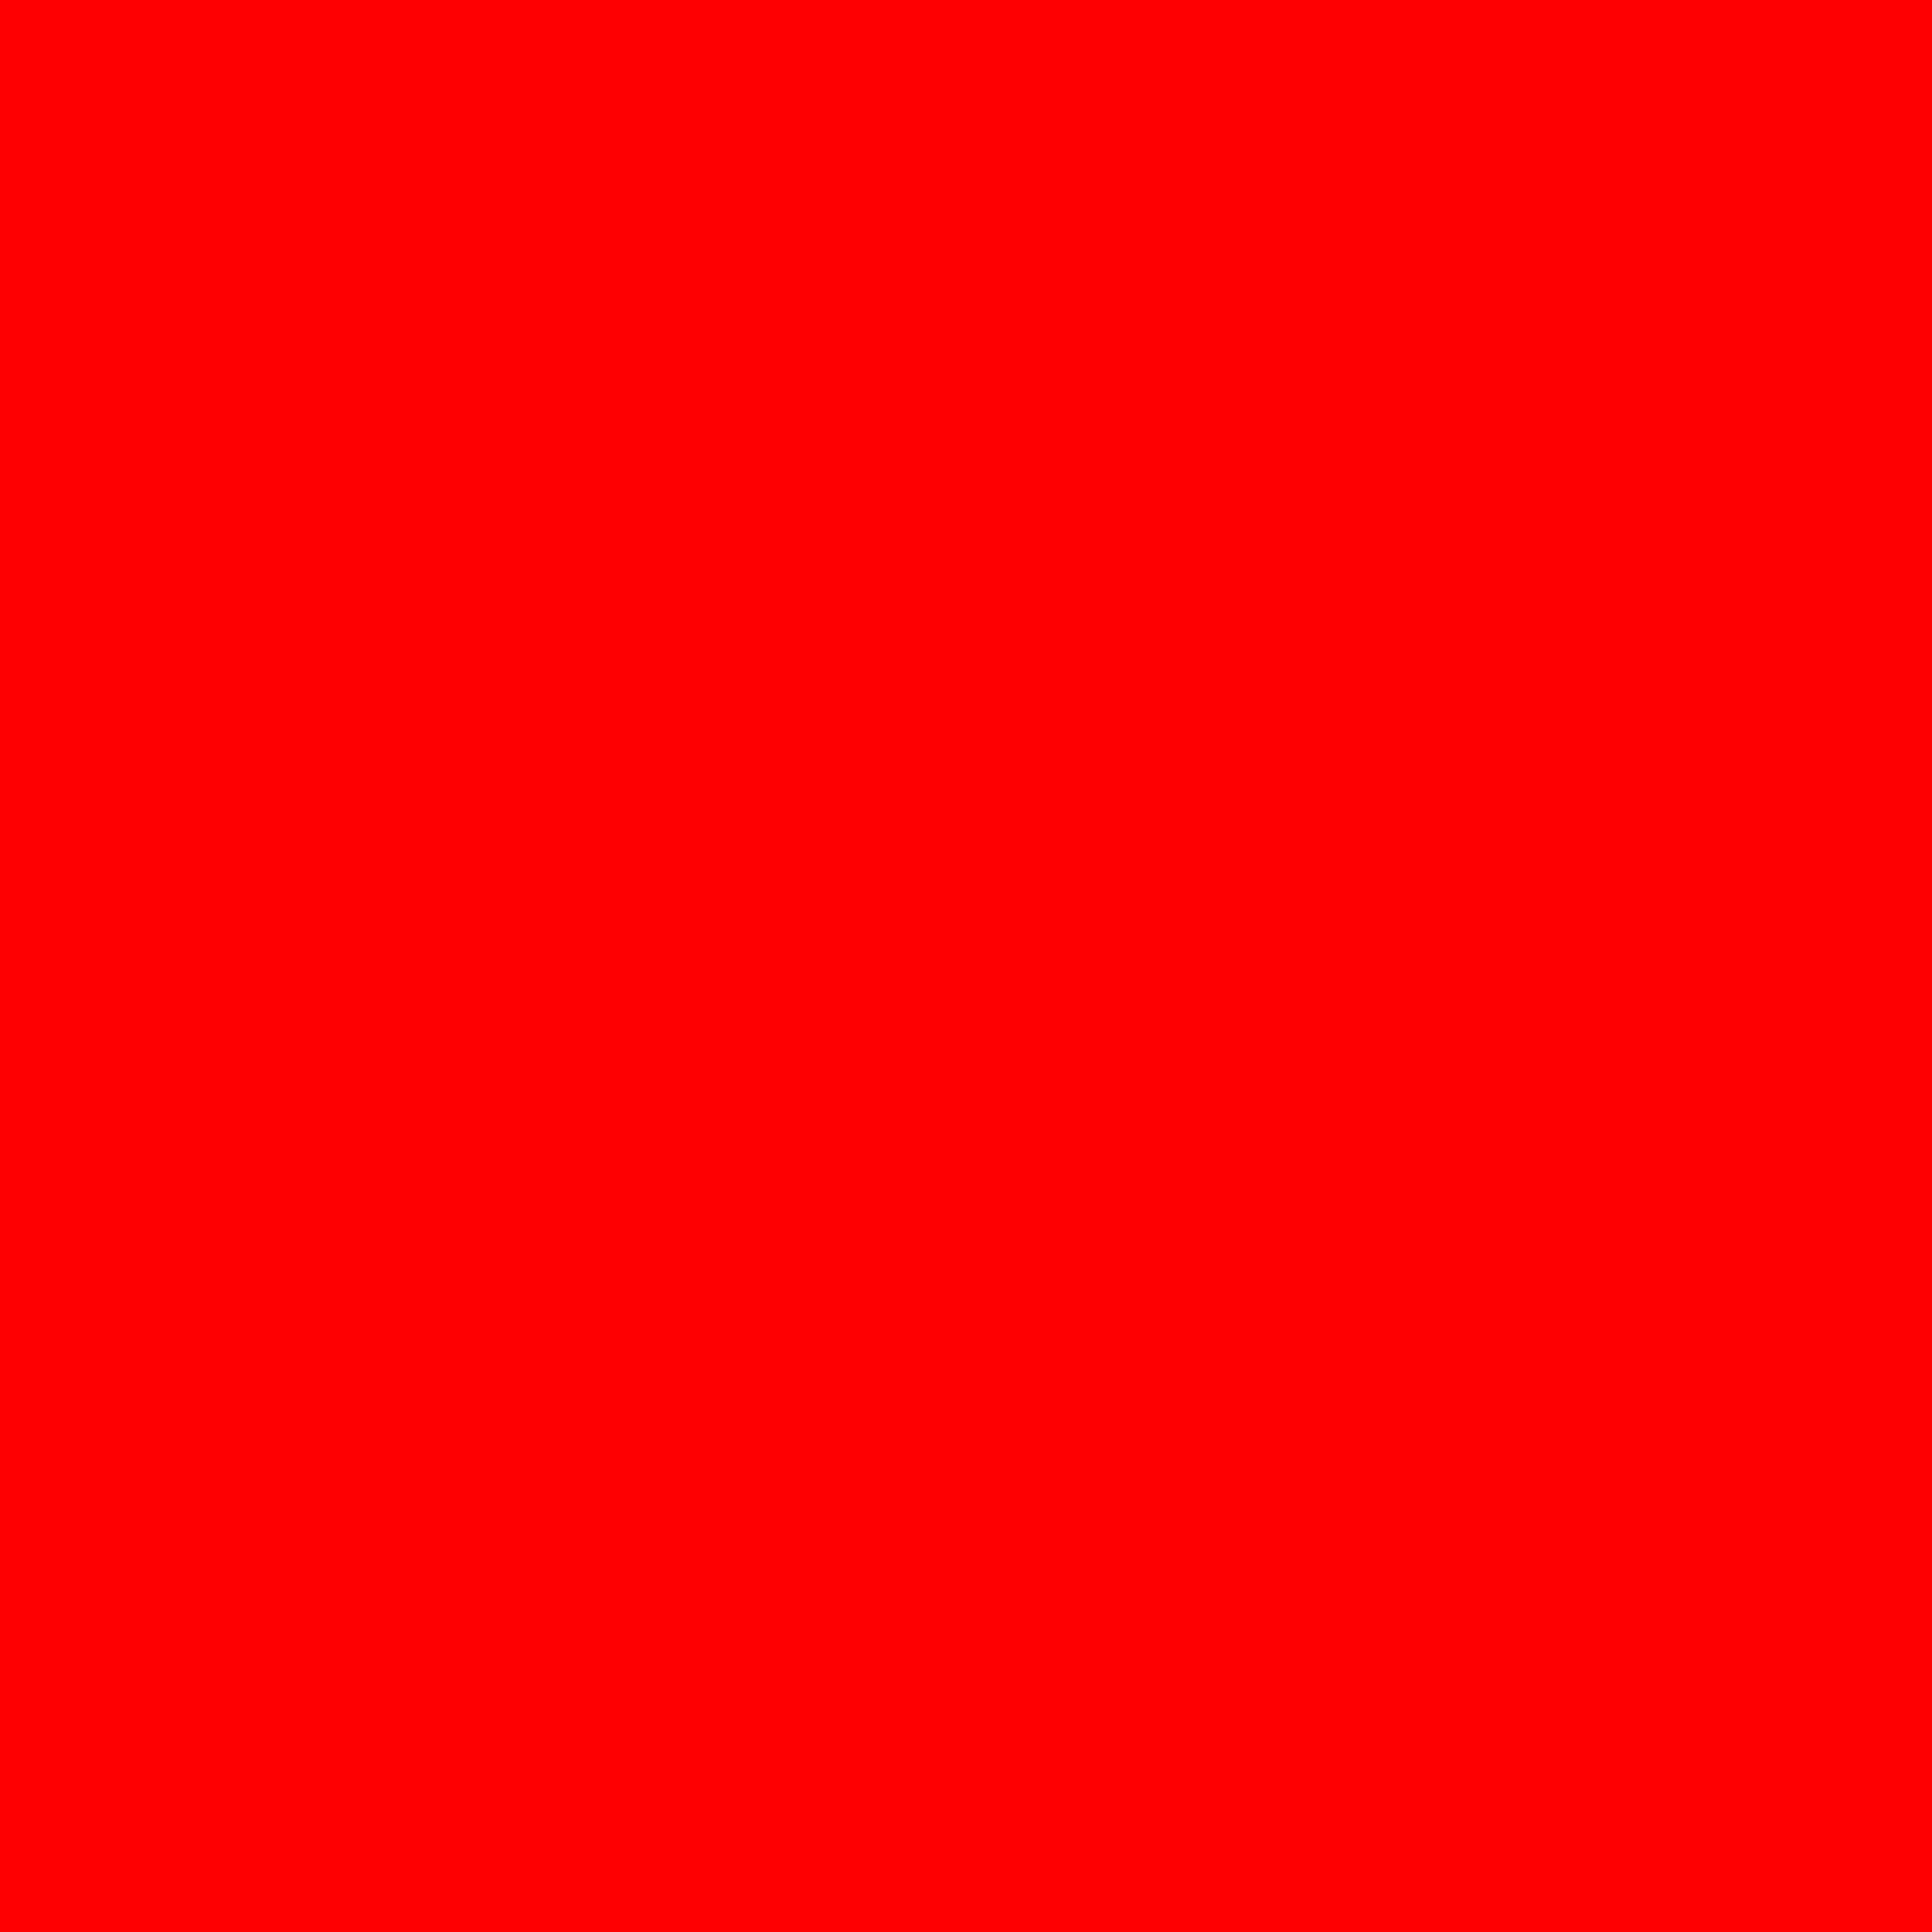 Square clipart. Ff color rgb red